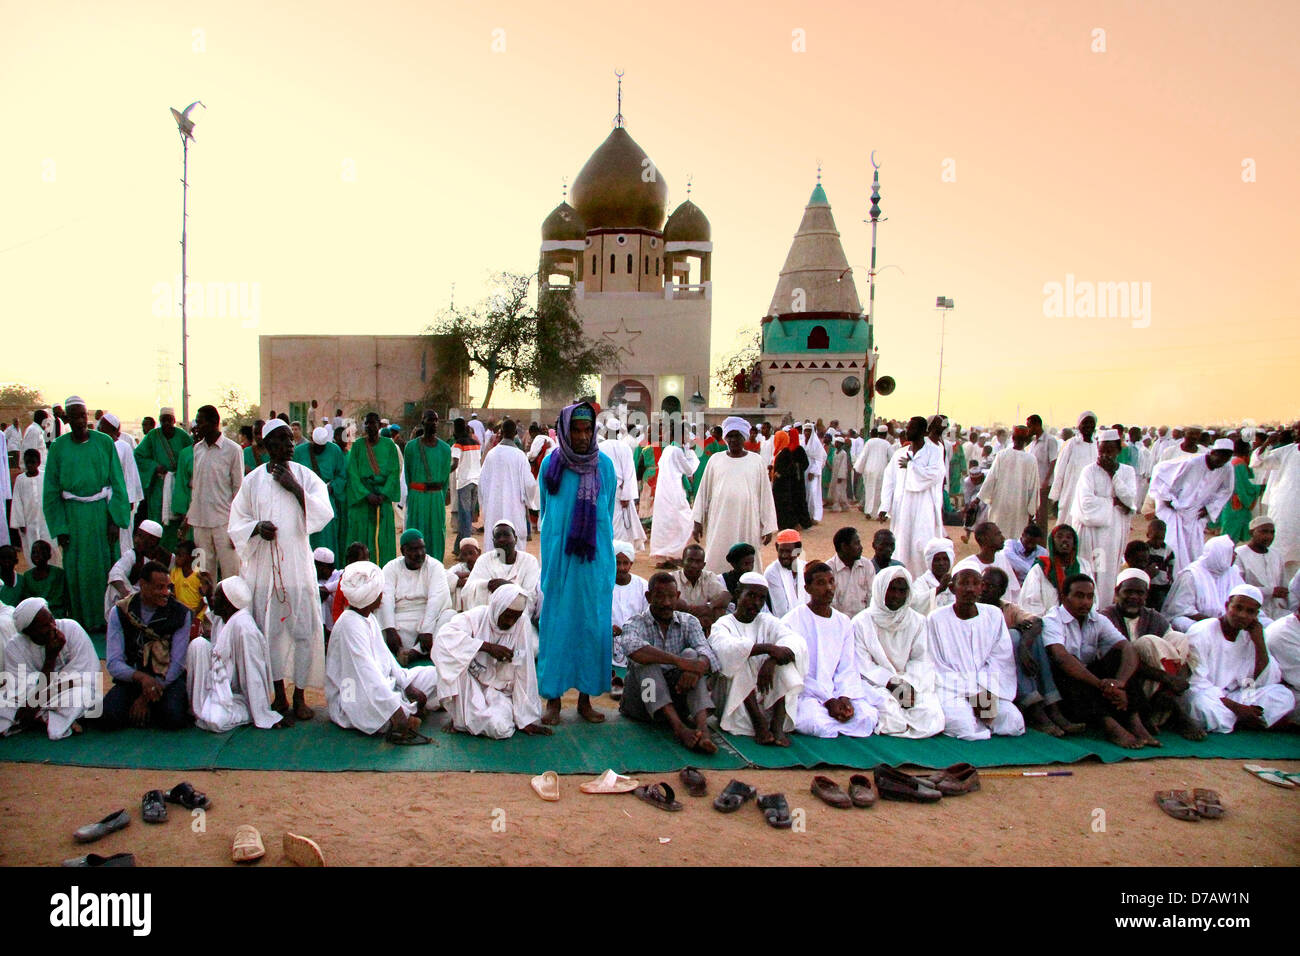 Africa Sudan Khartoum Dervishes behind the mosque at dusk - Stock Image